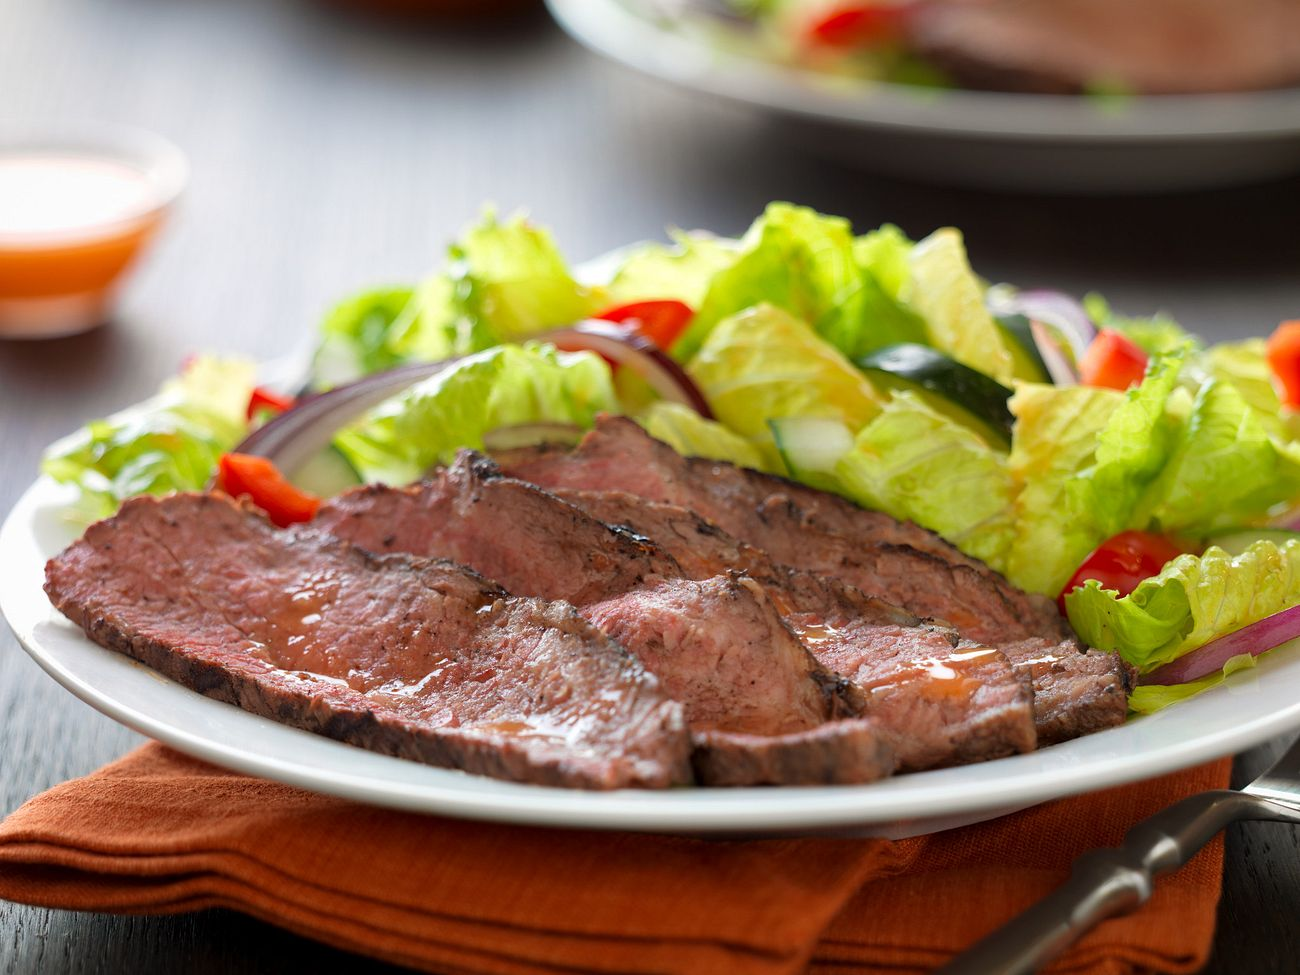 caribbean-jerk-tri-tip-over-basil-lime-salad